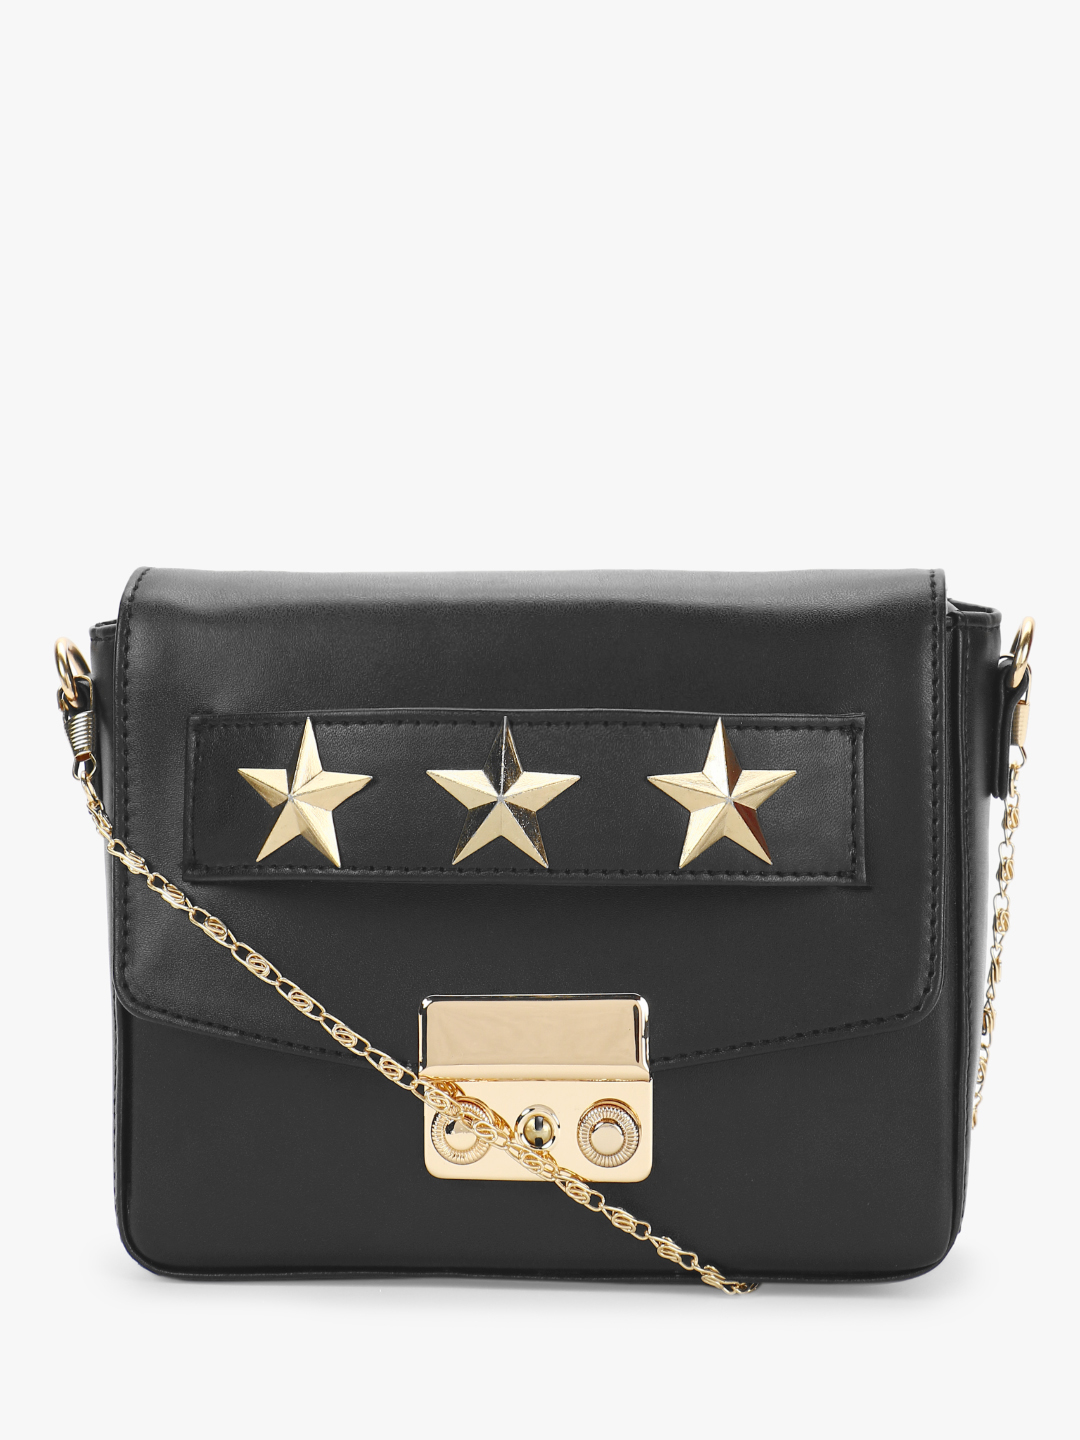 Gusto Black Star Studded Sling Bag 1